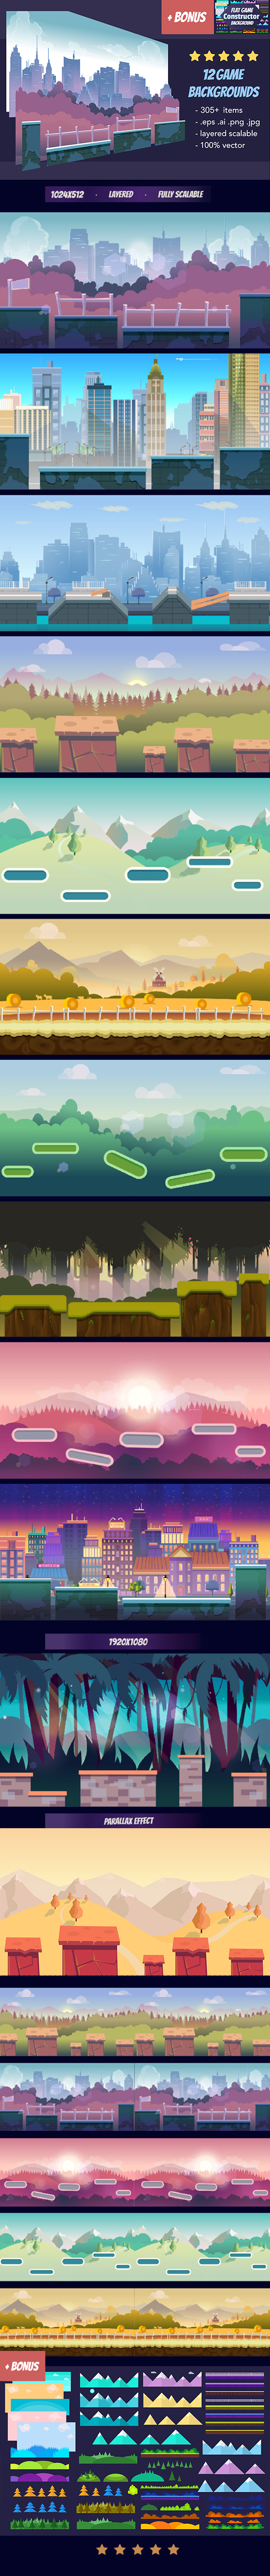 Game Backgrounds Pack III + Flat Constructor example image 2